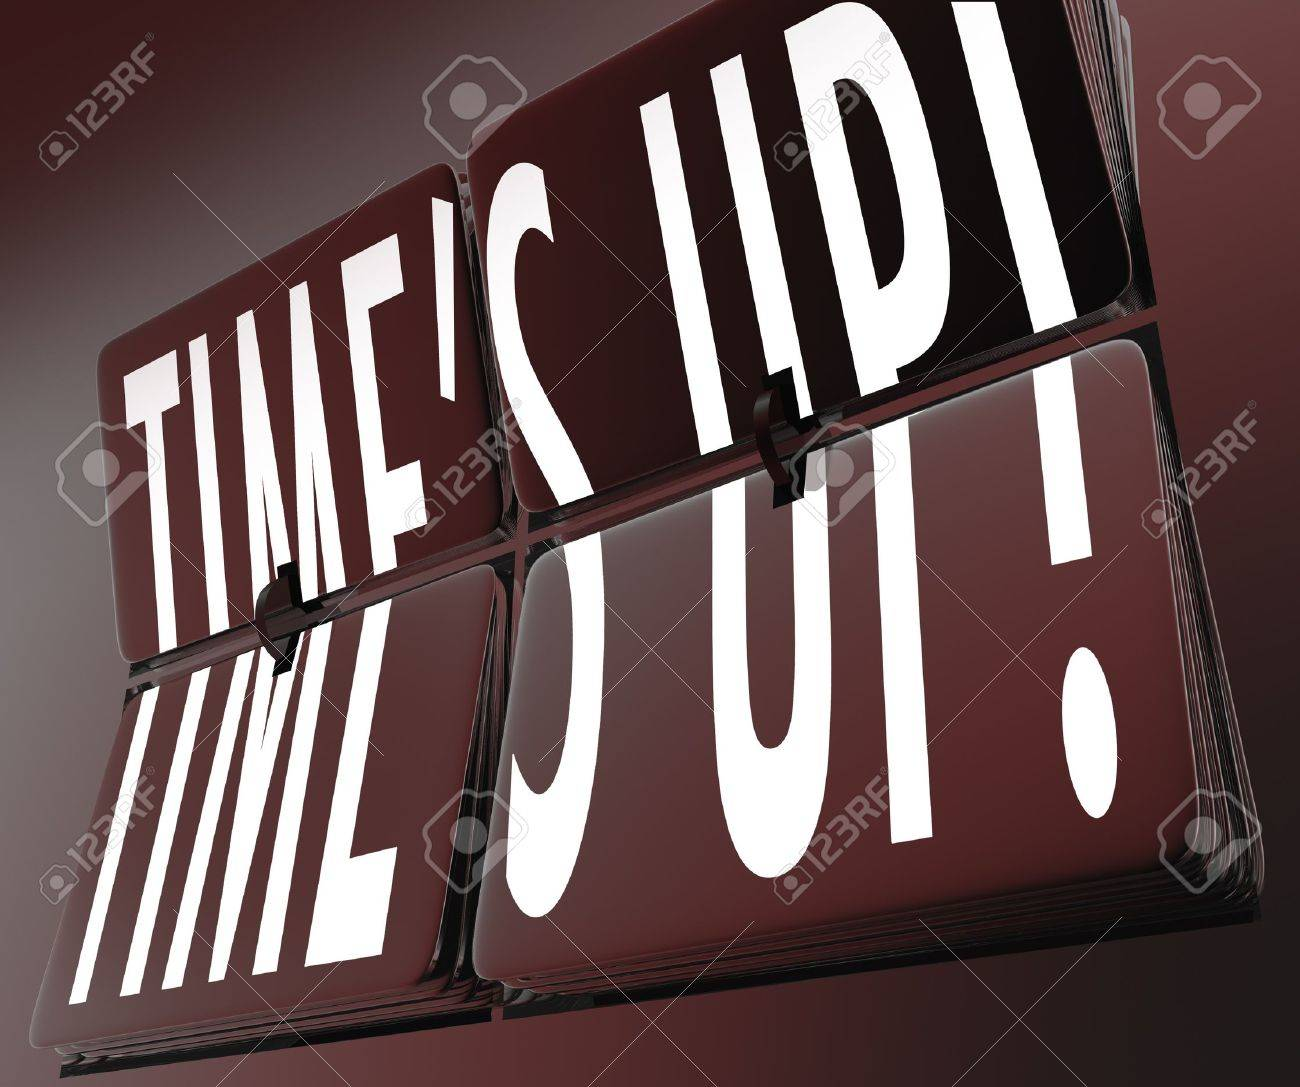 Tiles on an old-fashioned, retro clock with flip-style numbers and the word Awake on the flip tiles to tell you to get up for work, an appointment or other important event Stock Photo - 18565296